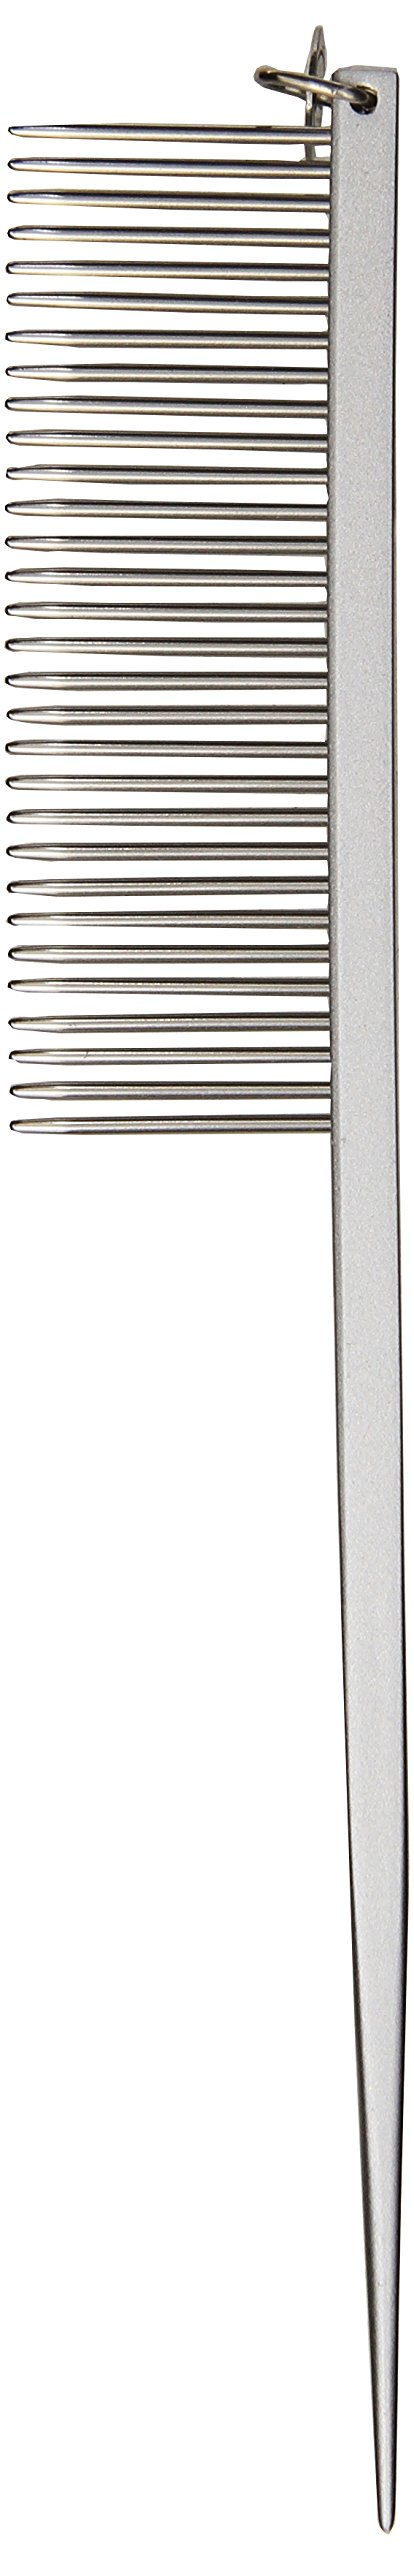 Geib, Stainless Steel Tail Comb 7 In Medium